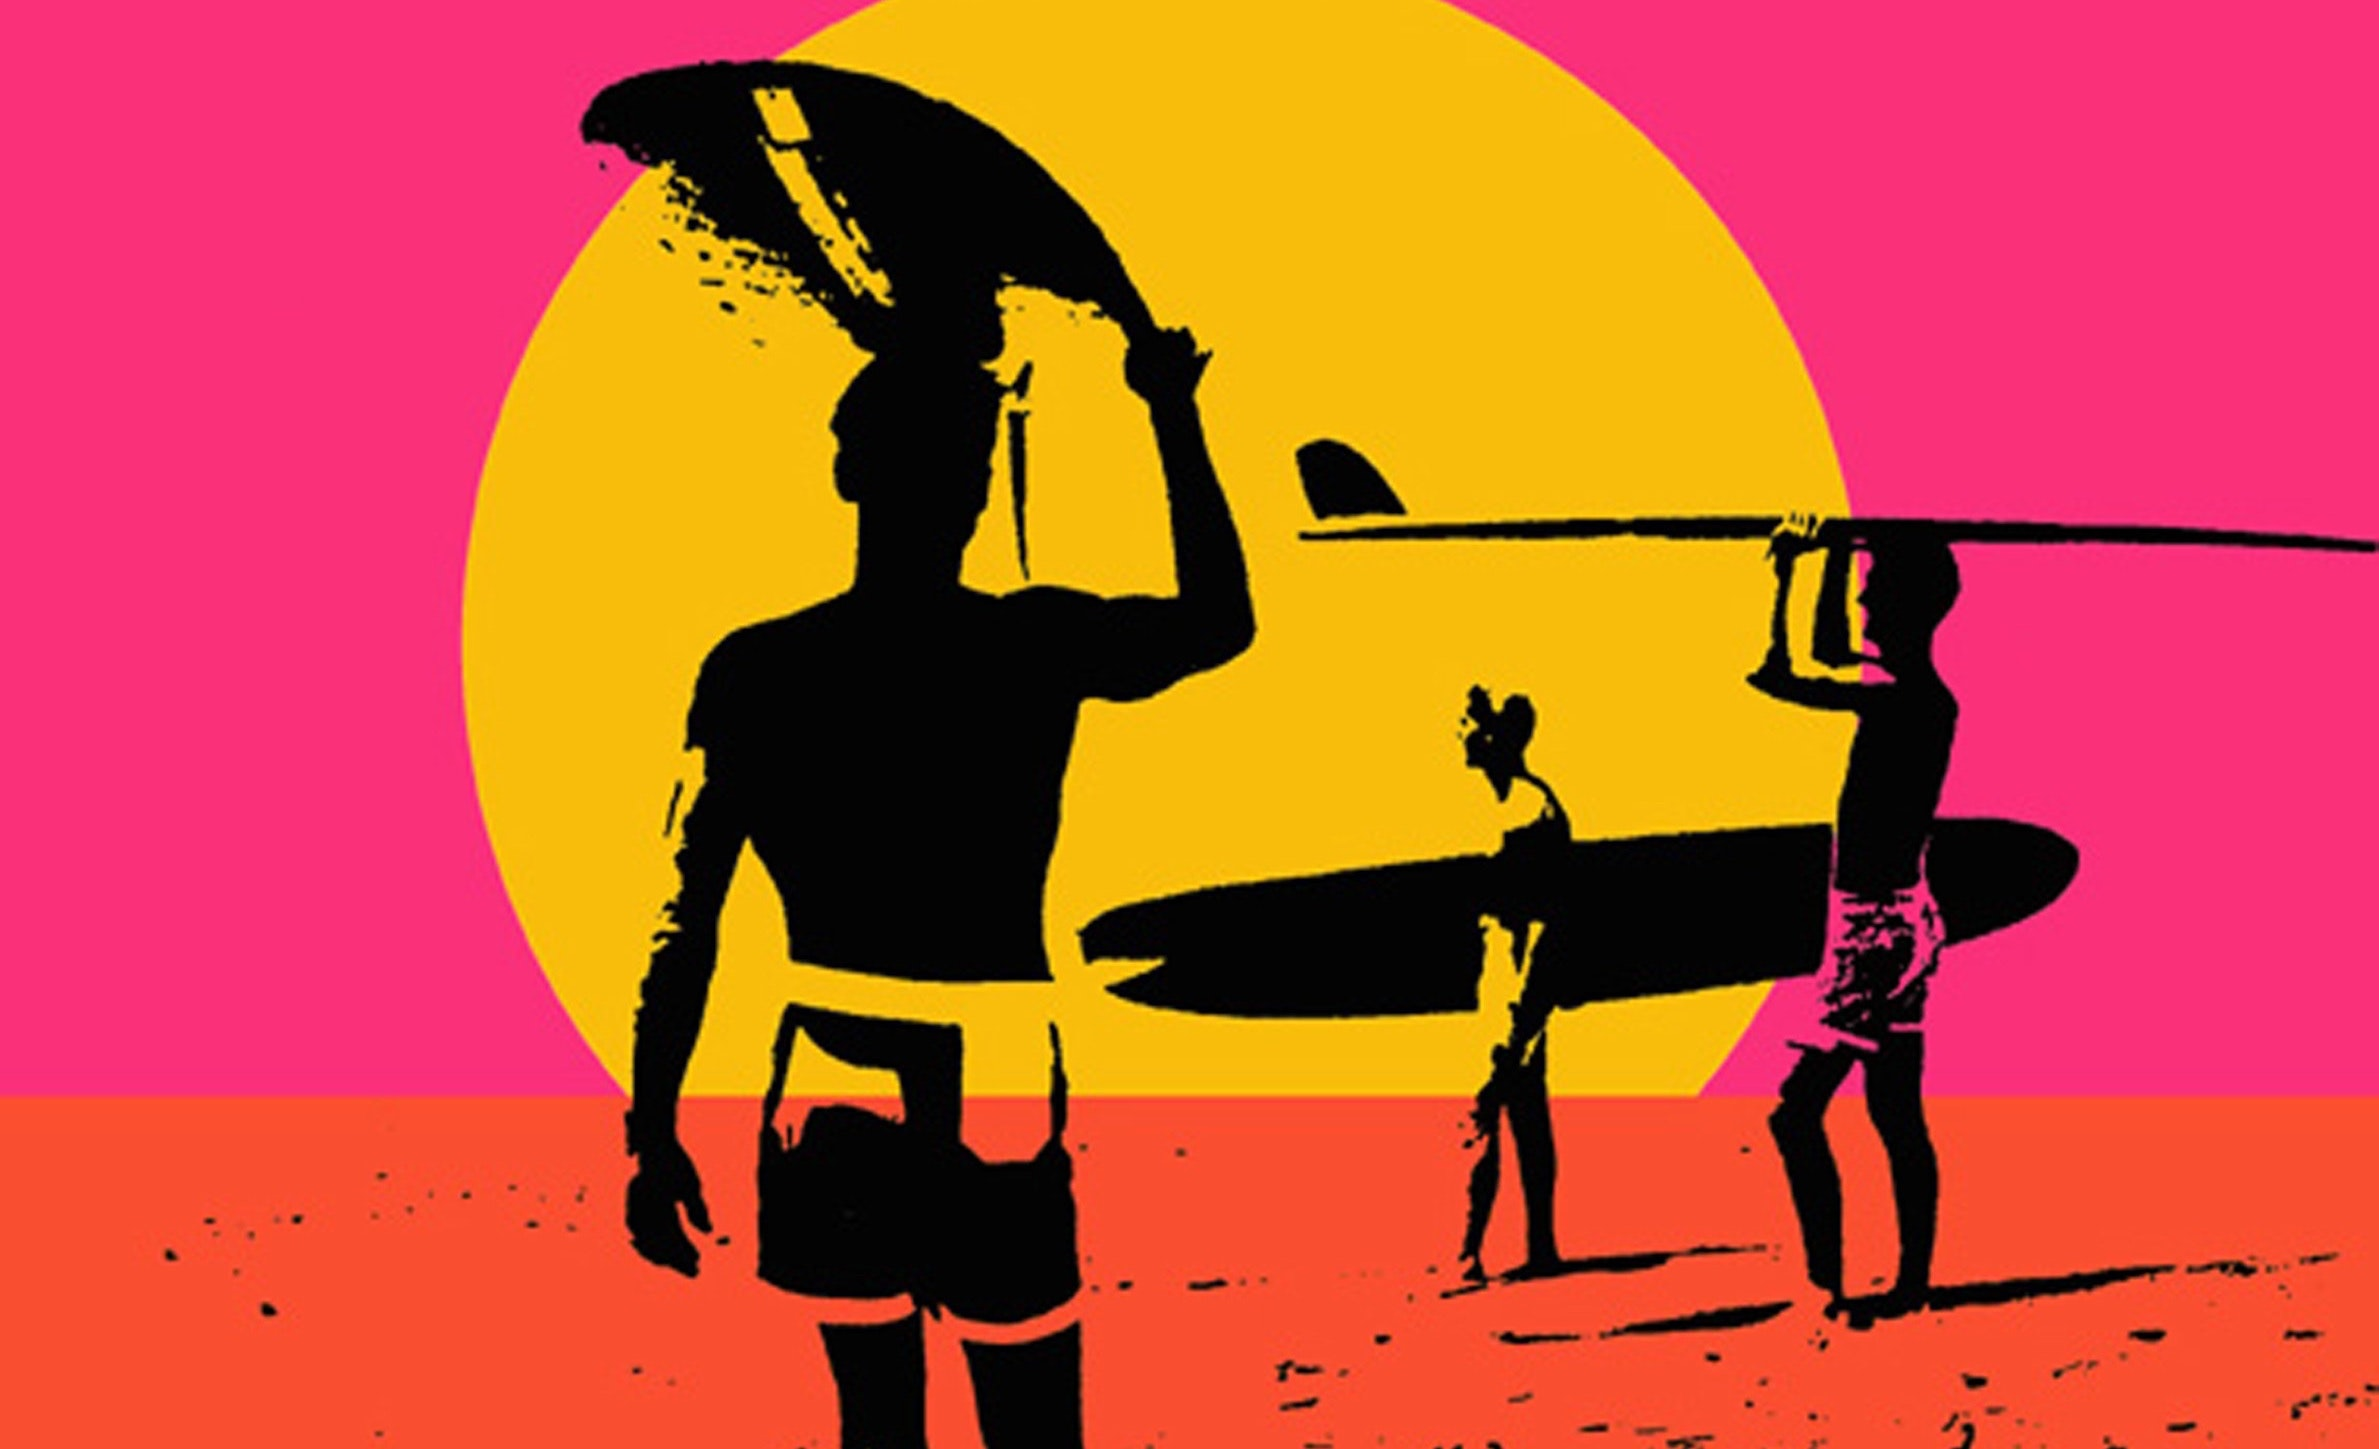 famous surf art: Endless Summer